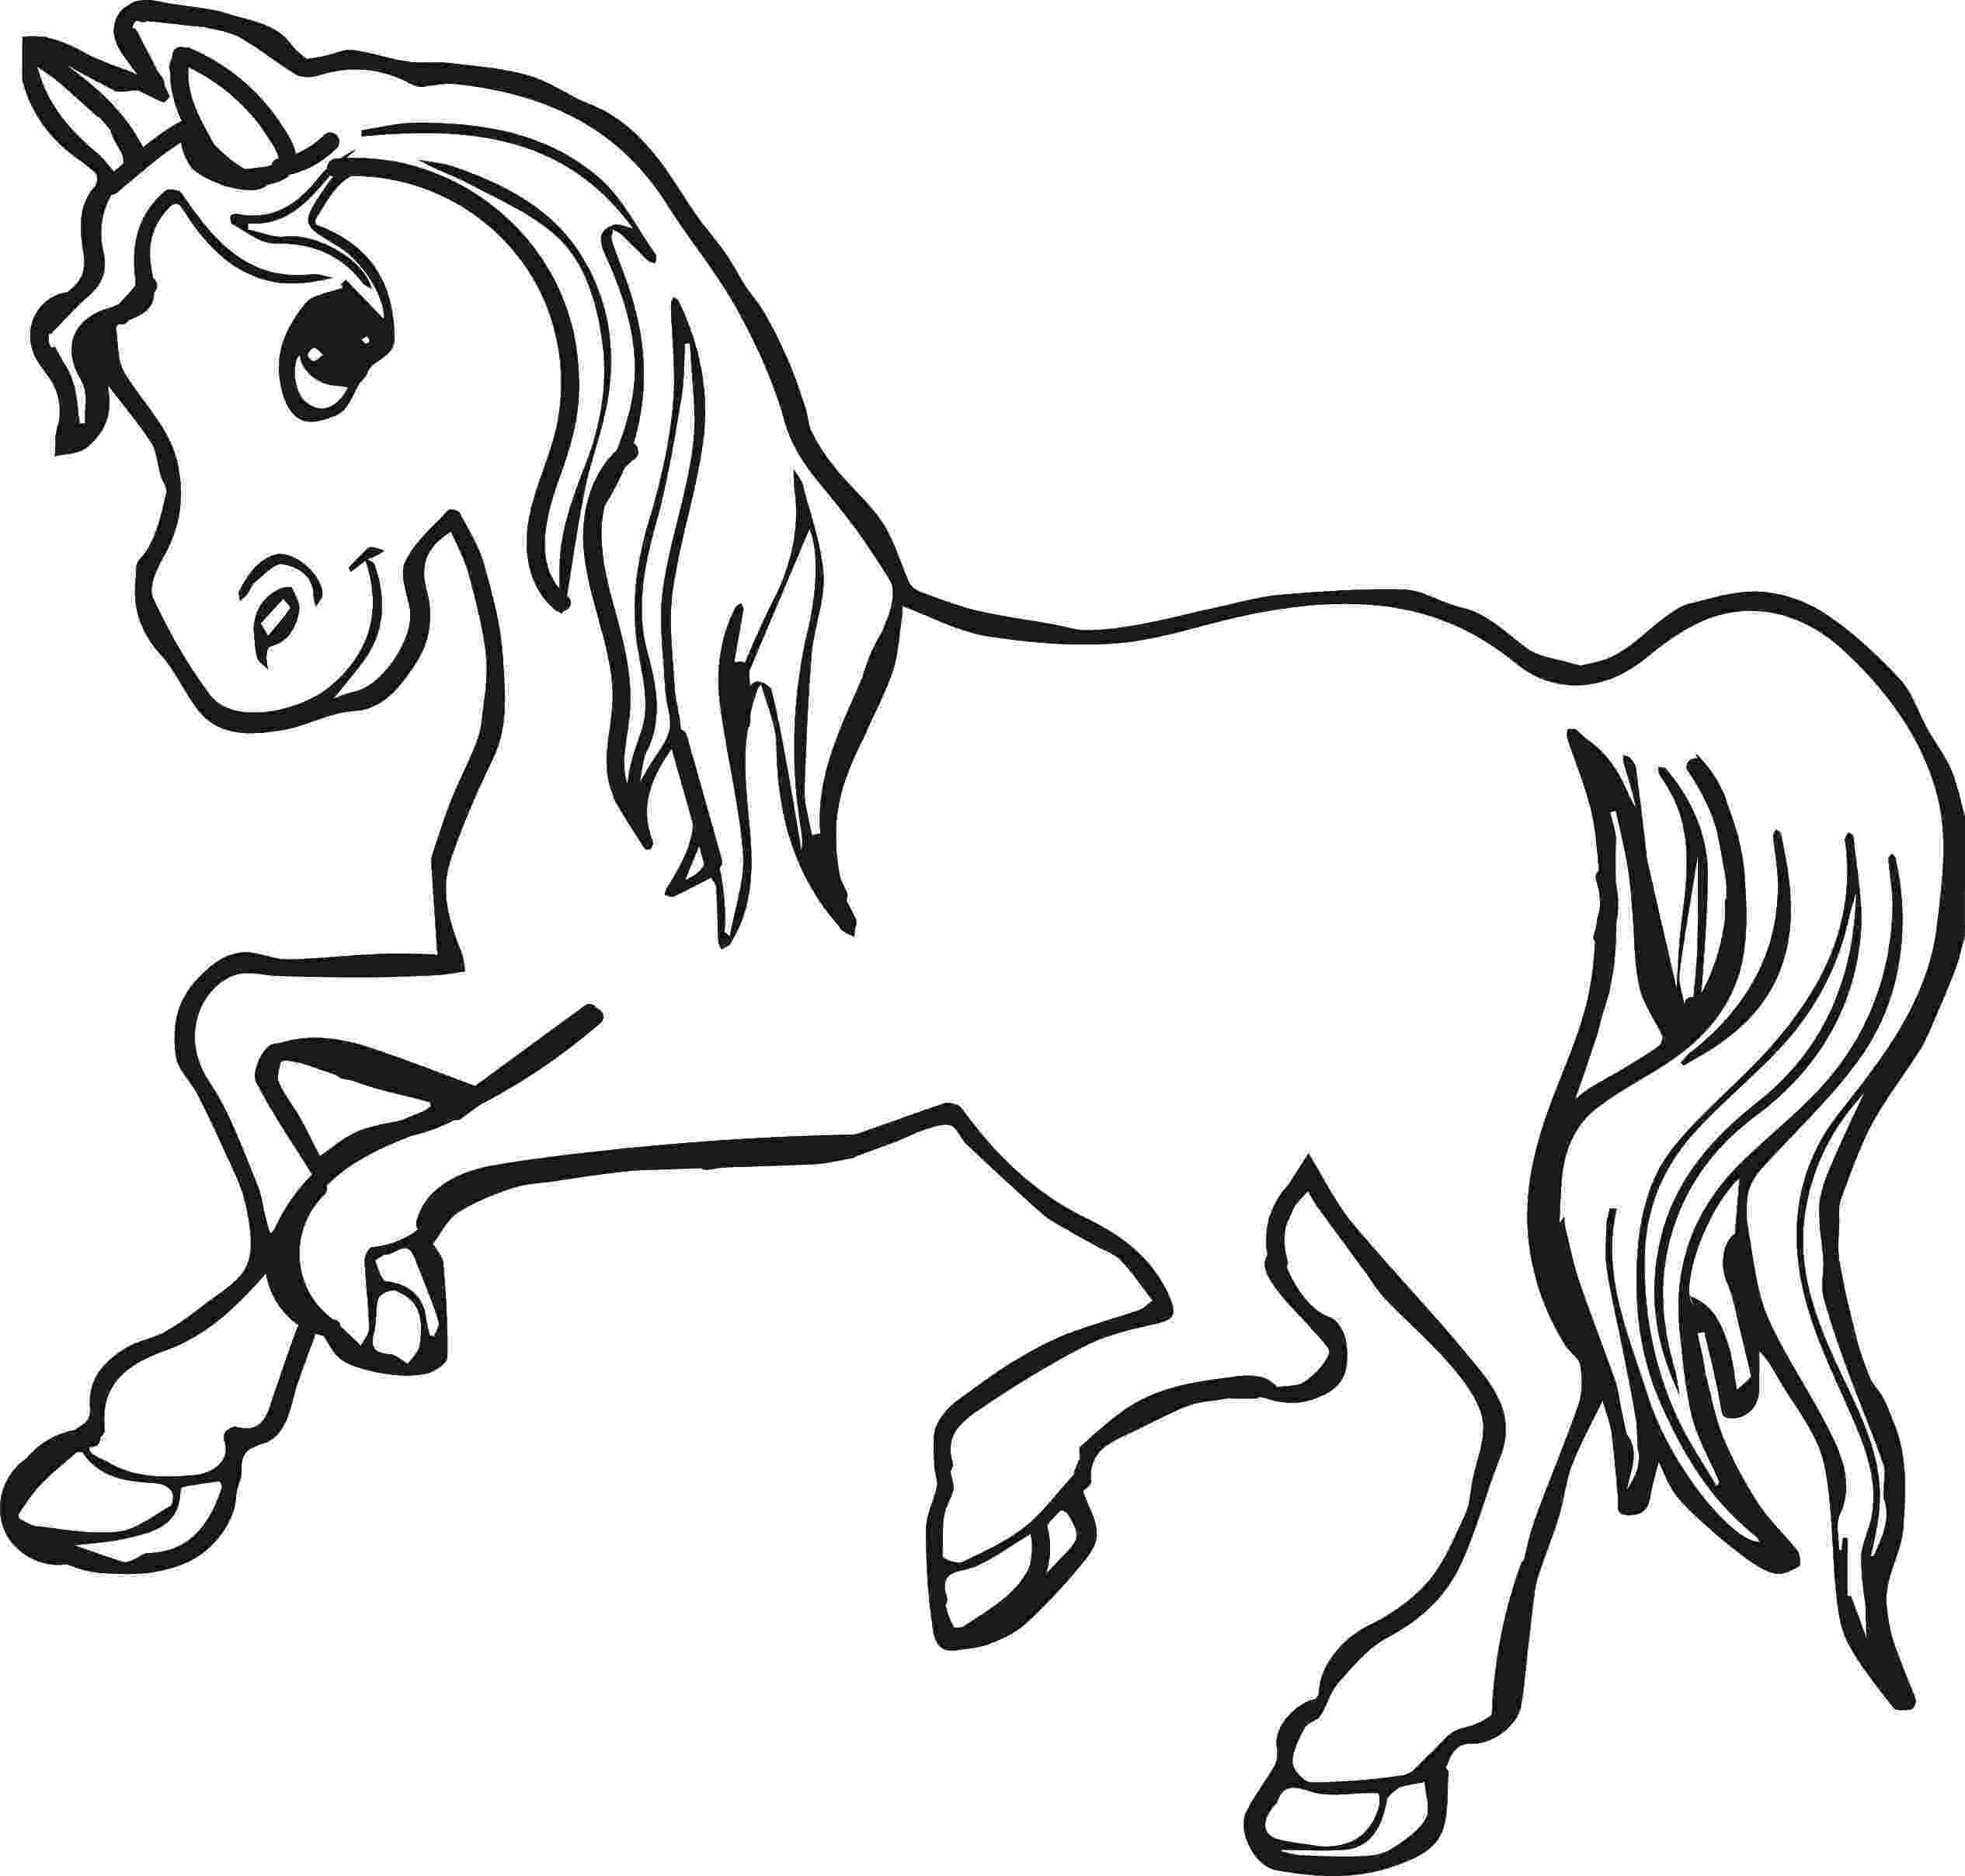 colouring horse running horse coloring page free printable coloring pages horse colouring